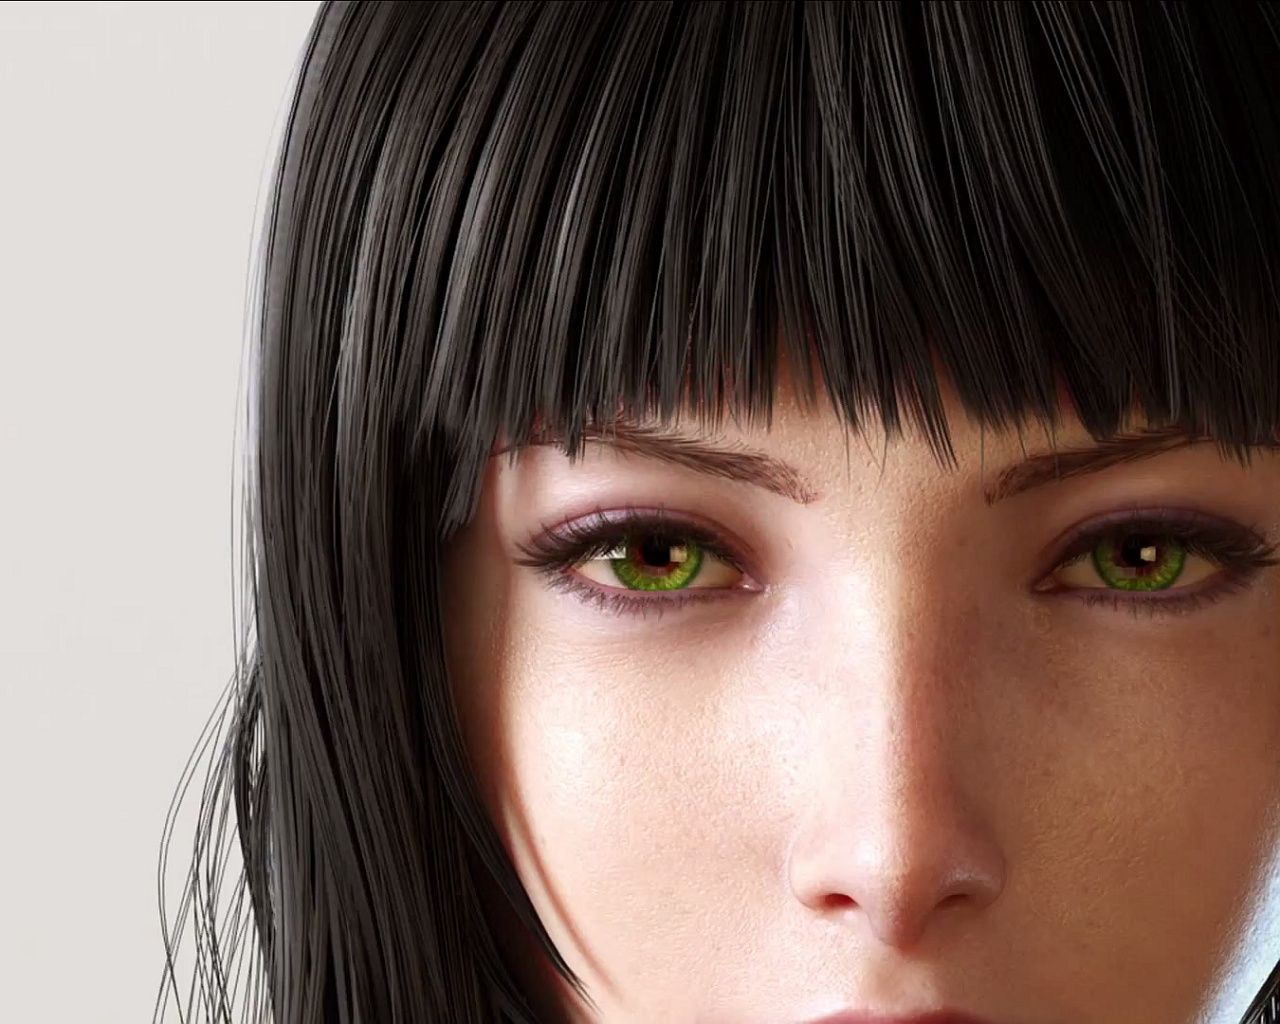 Girl from final fantasy xv